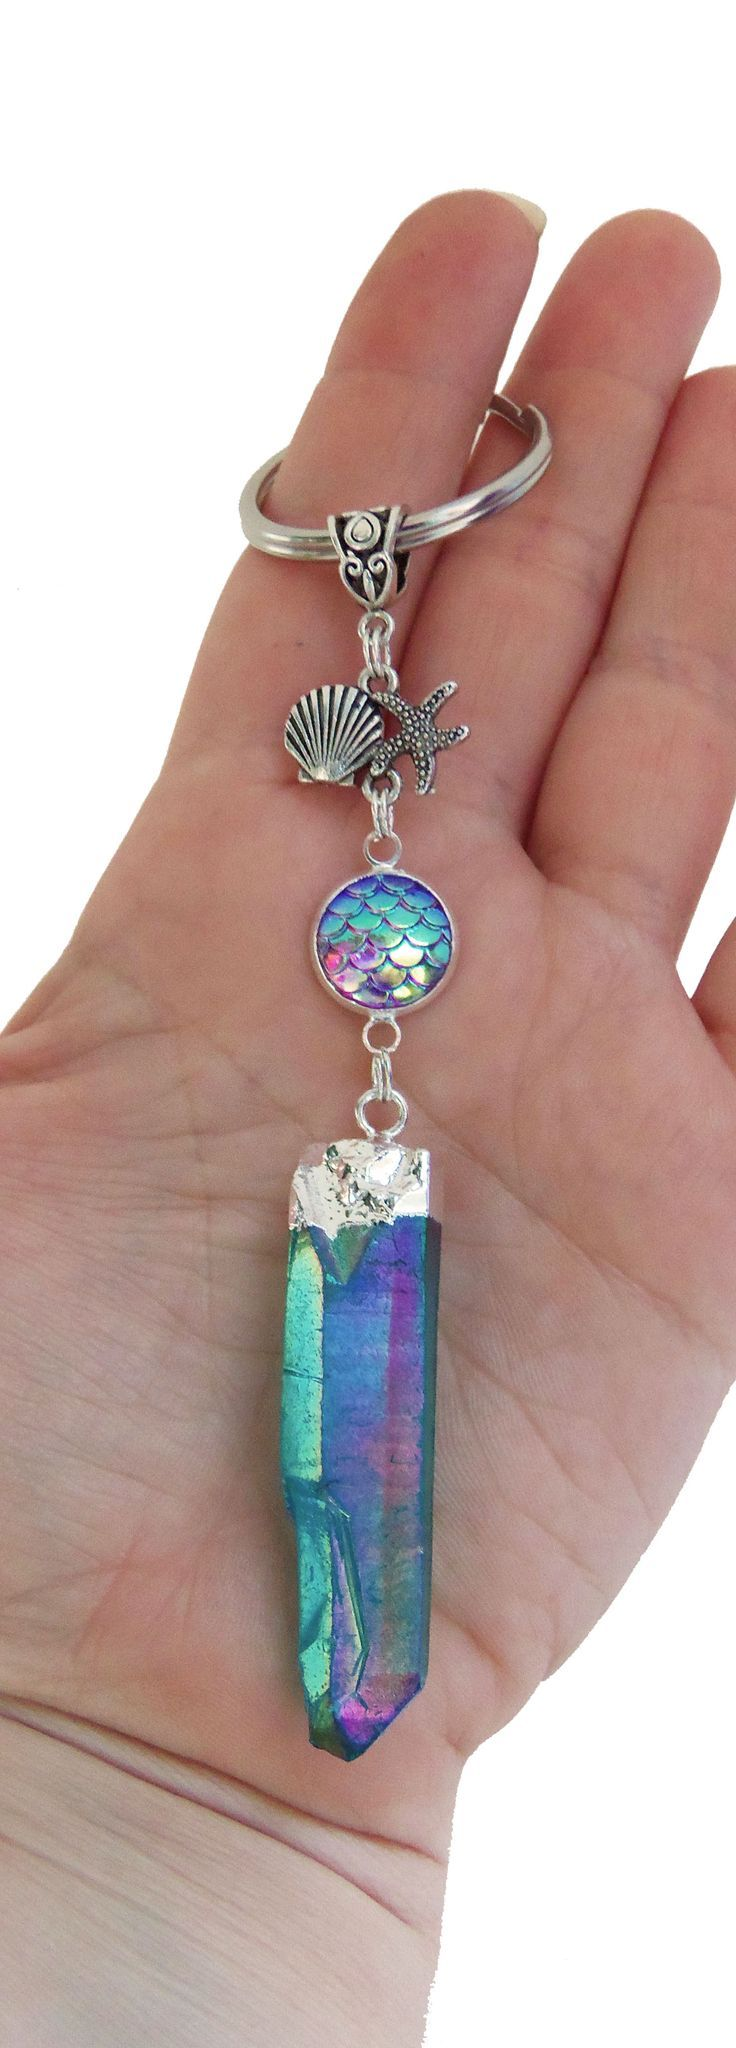 pretty aqua blue aura crystal with mermaid scale, starfish and seashell keychain.